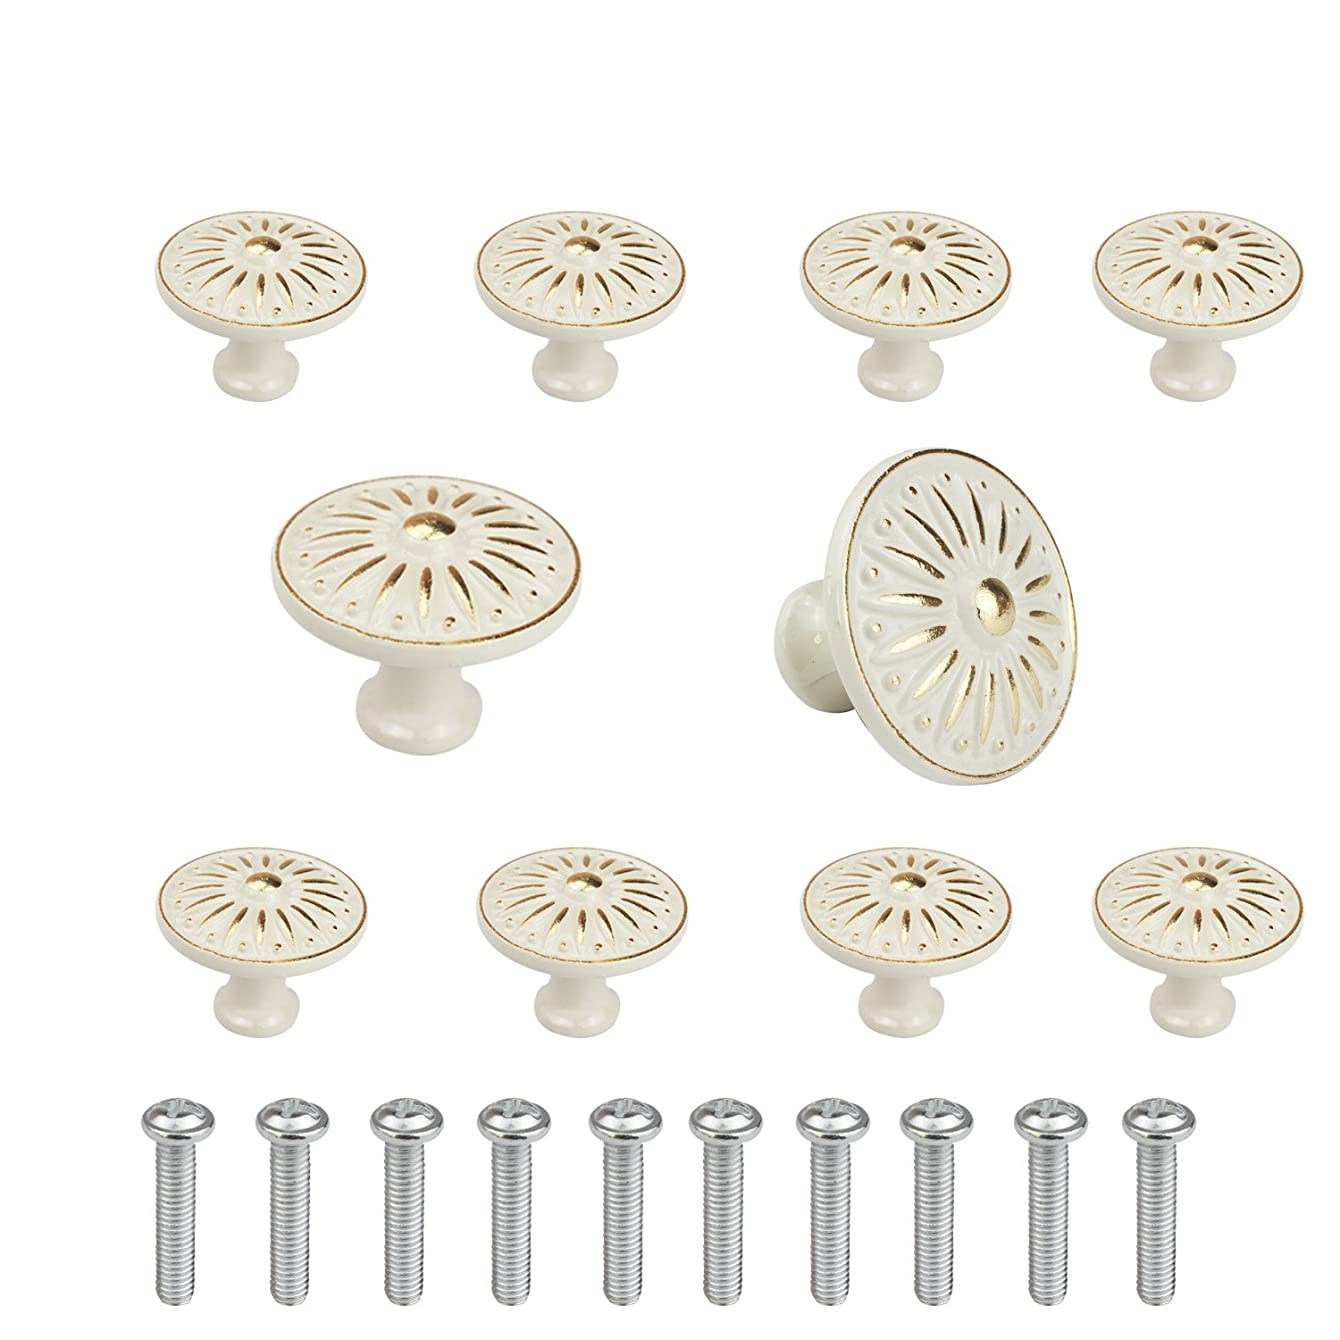 WeiMeet Cabinet Knob, 10Pcs 35mm Single Hole Ceramic knob Dresser Cupboard Cabinet Drawer Knobs Wardrobe Door Pull Handle for Home Office tobwqabjfxekr86